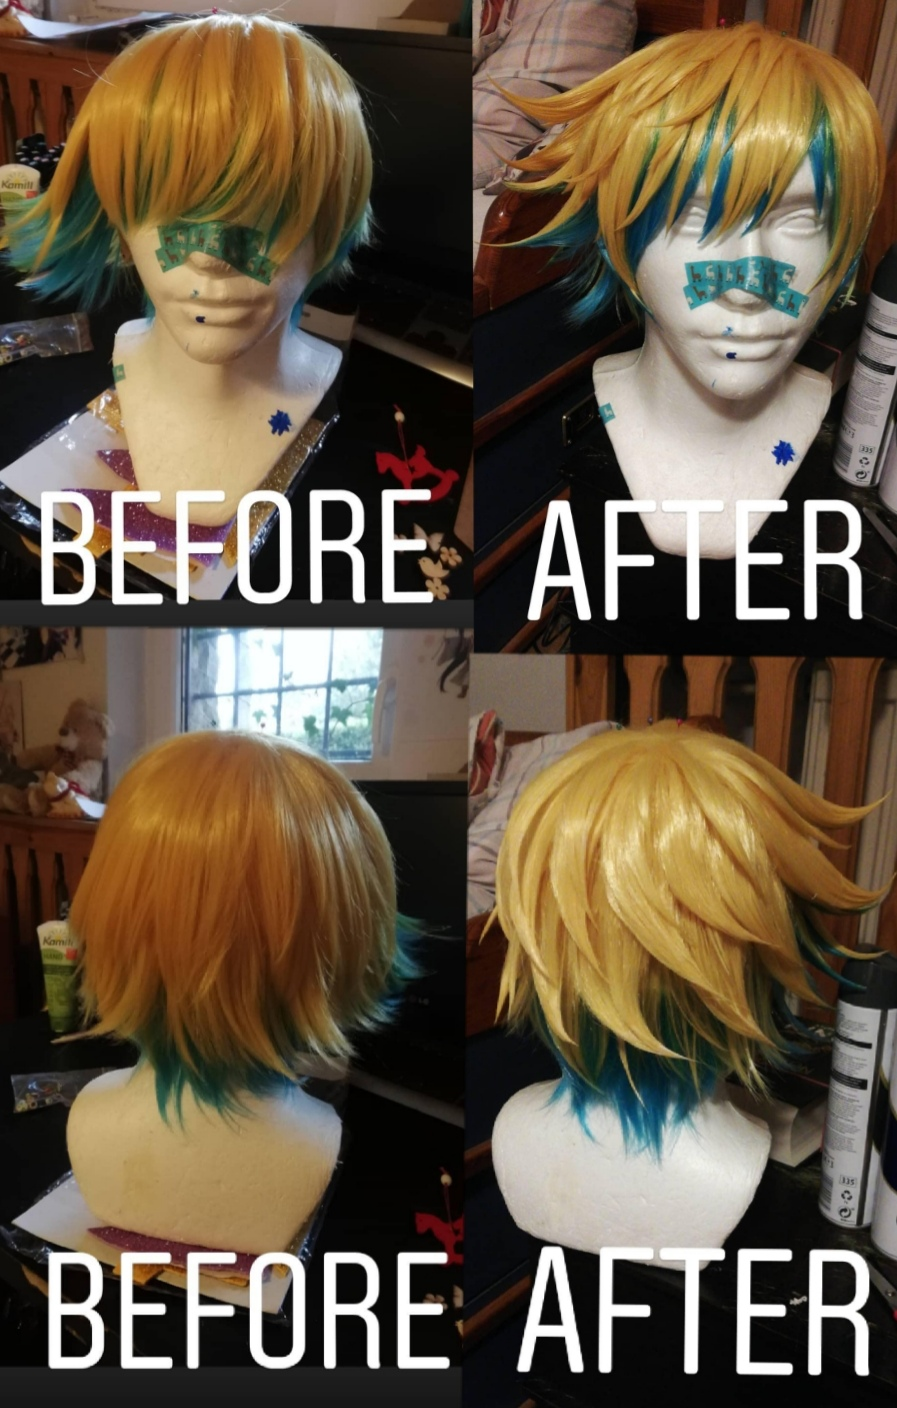 Perfect for Ezreal!